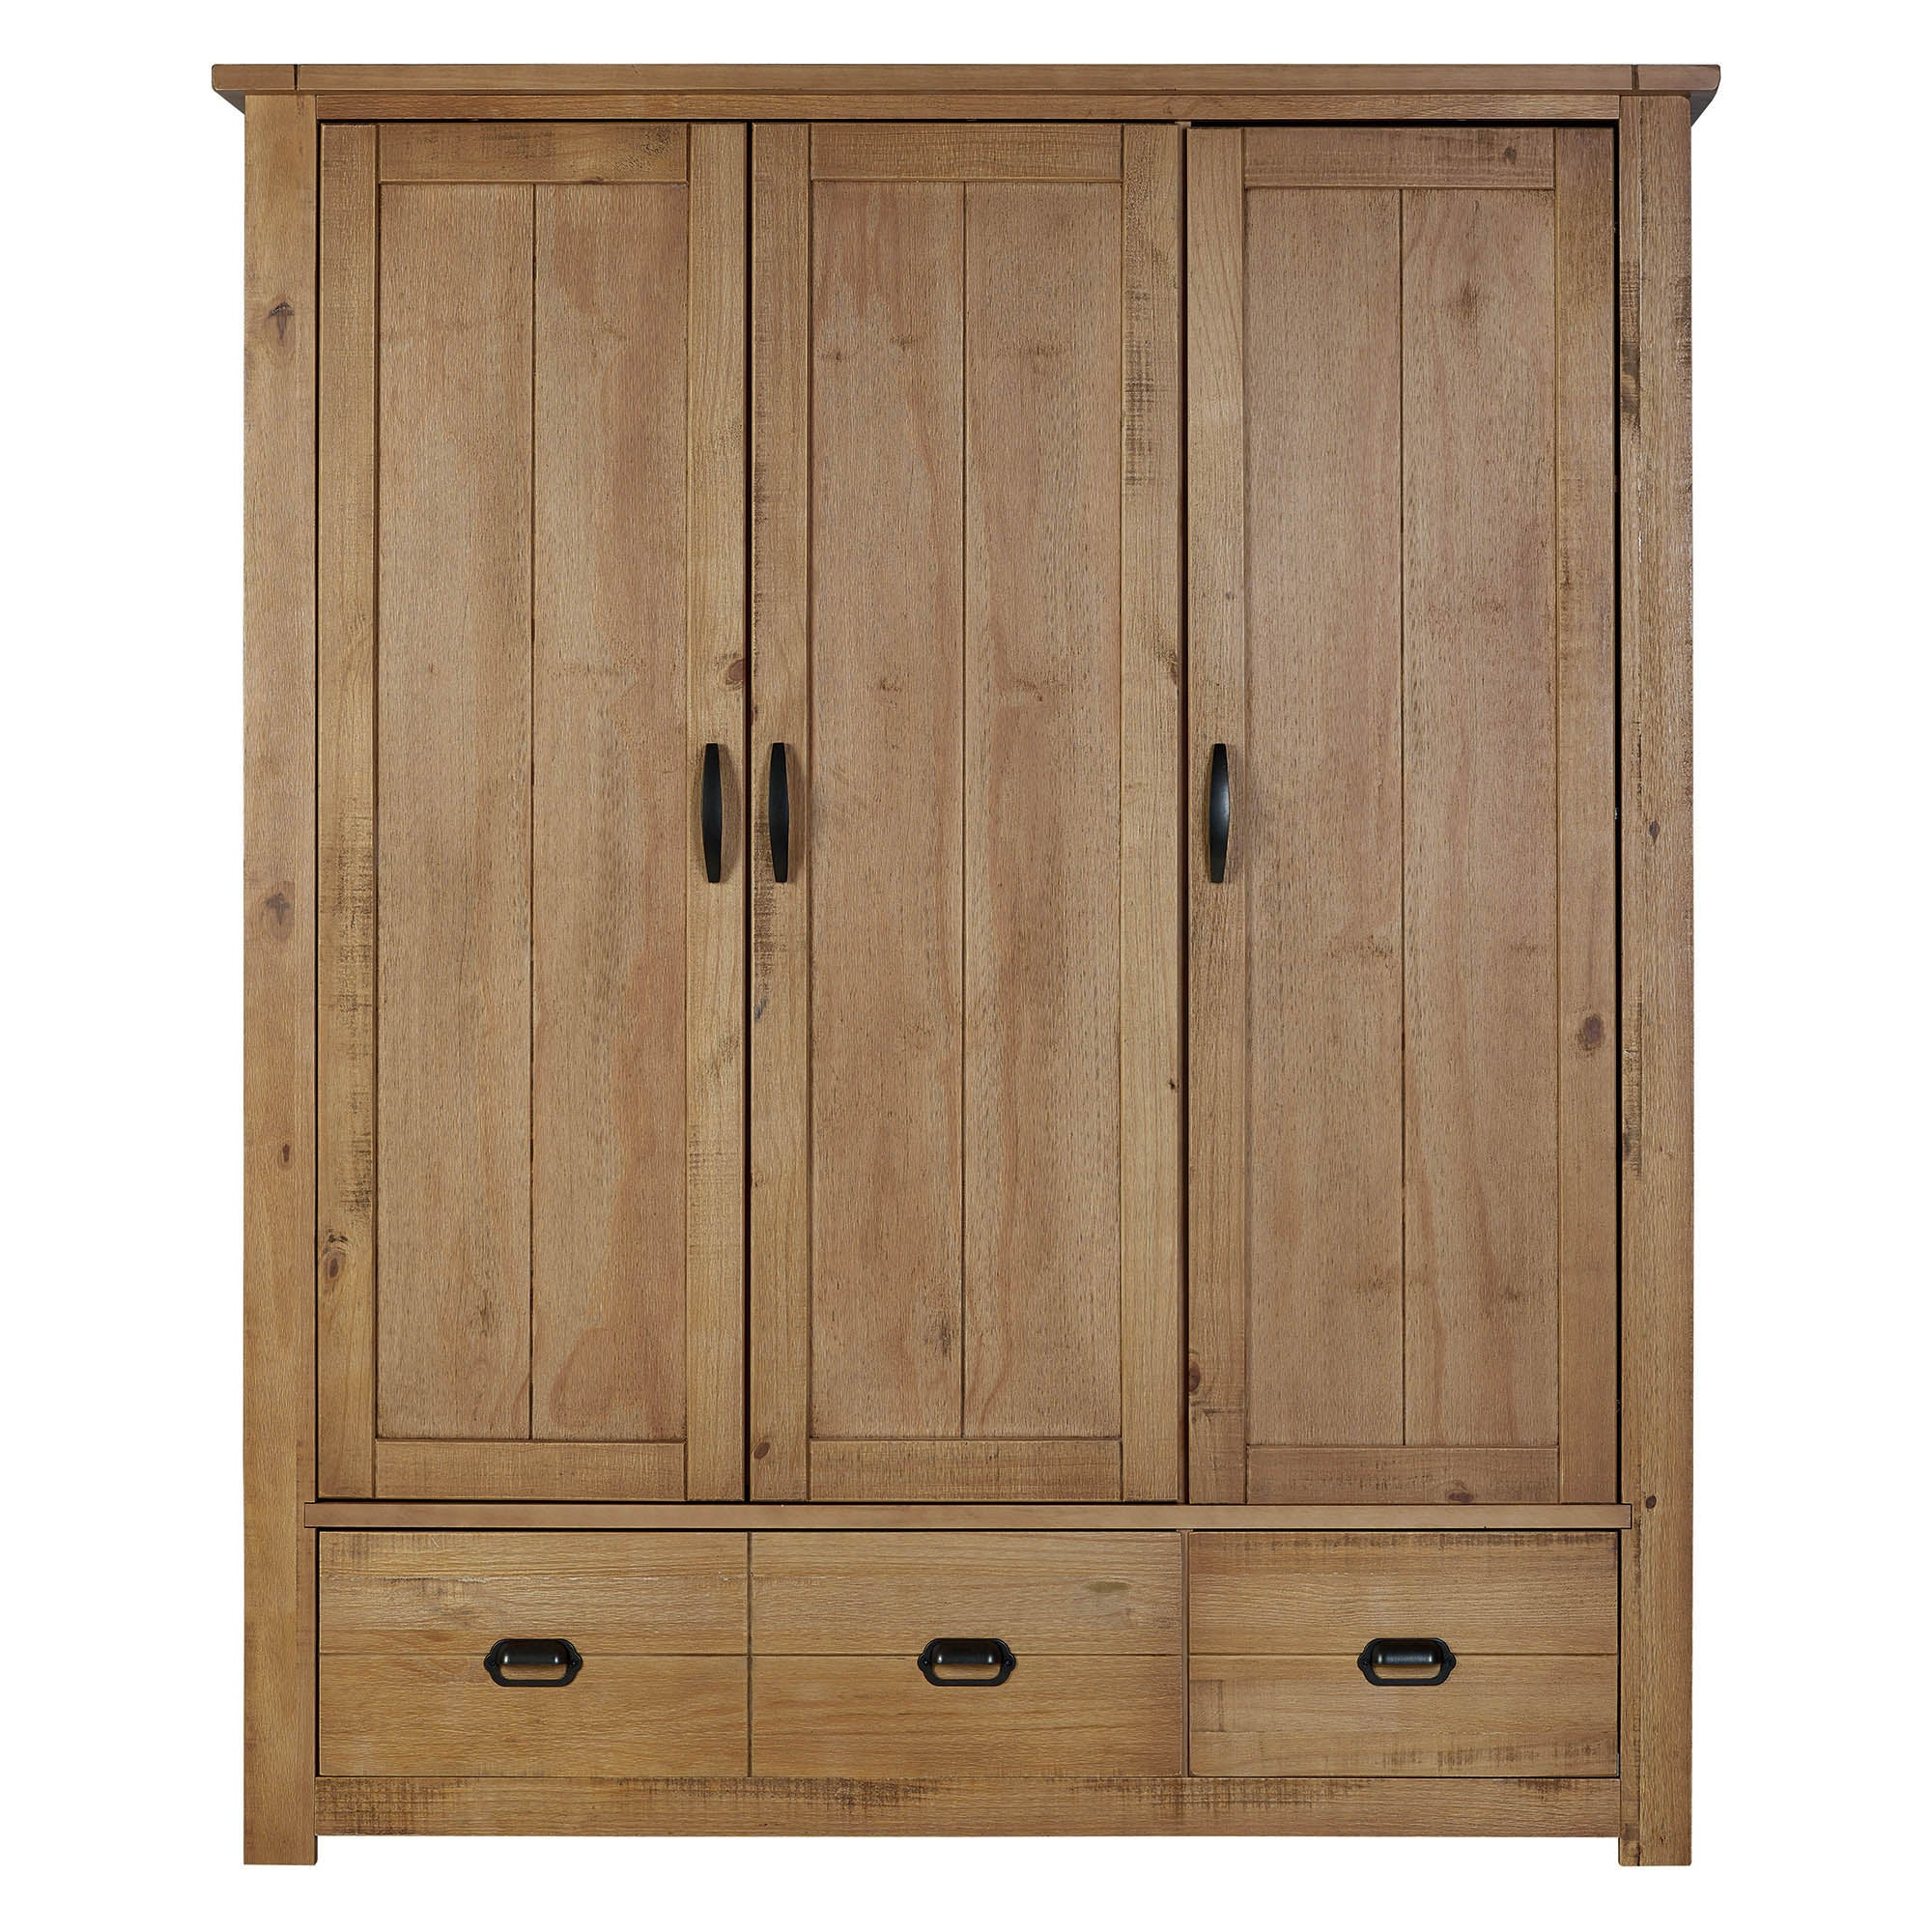 Photo of Fenton pine triple wardrobe brown